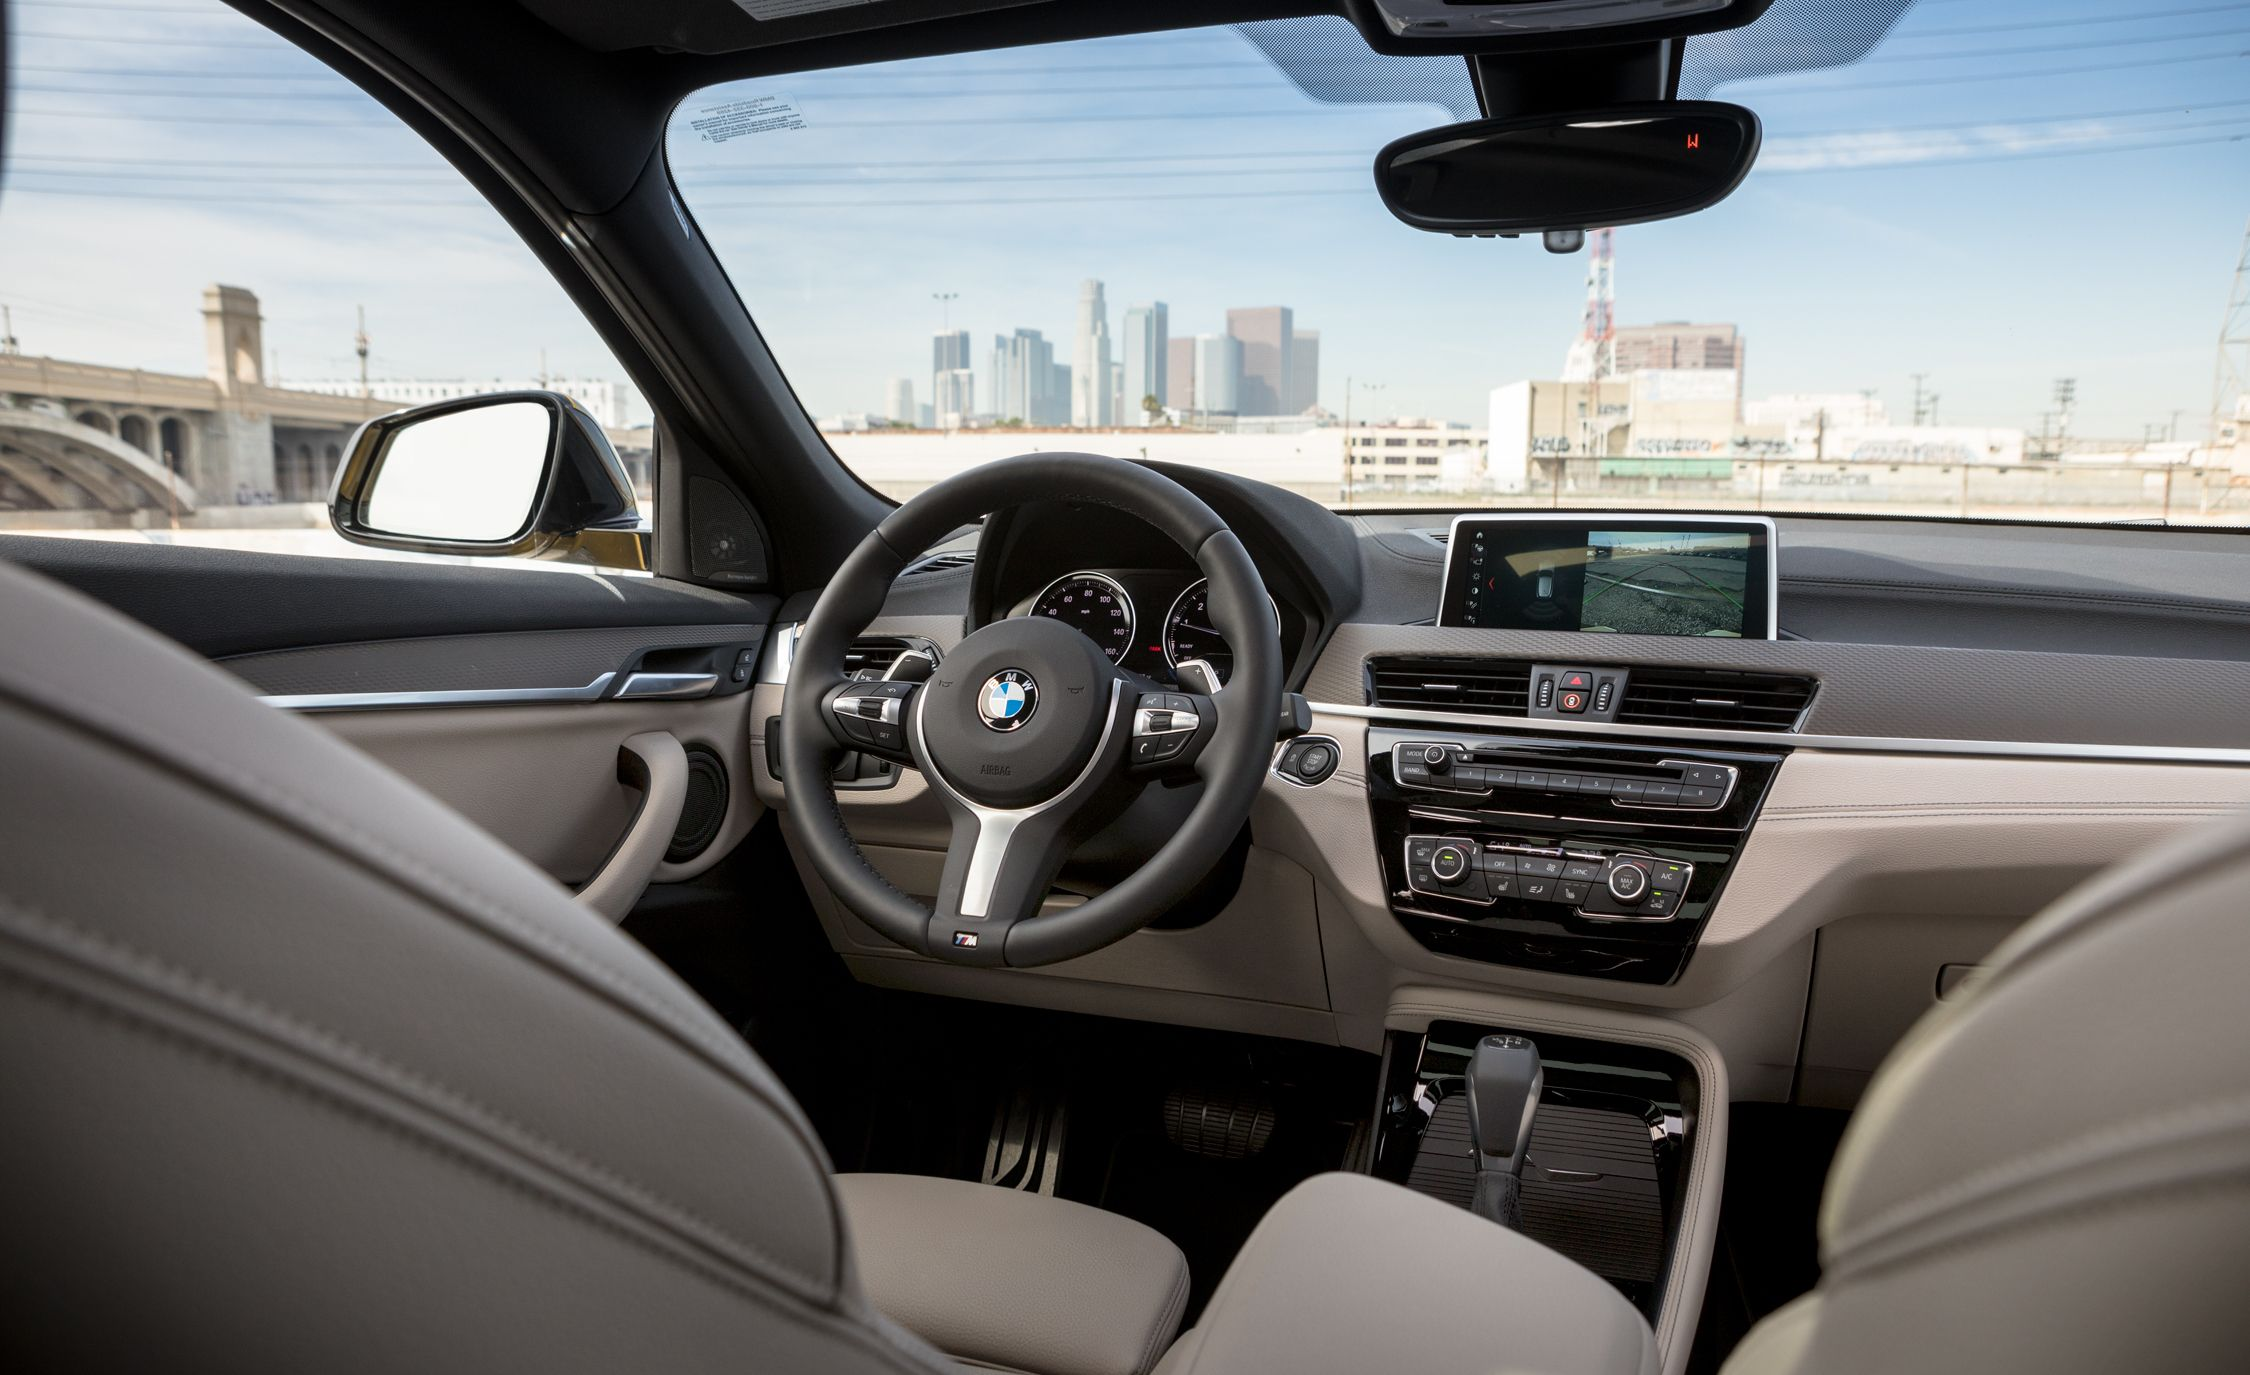 2019 Bmw X2 Reviews Bmw X2 Price Photos And Specs Car And Driver